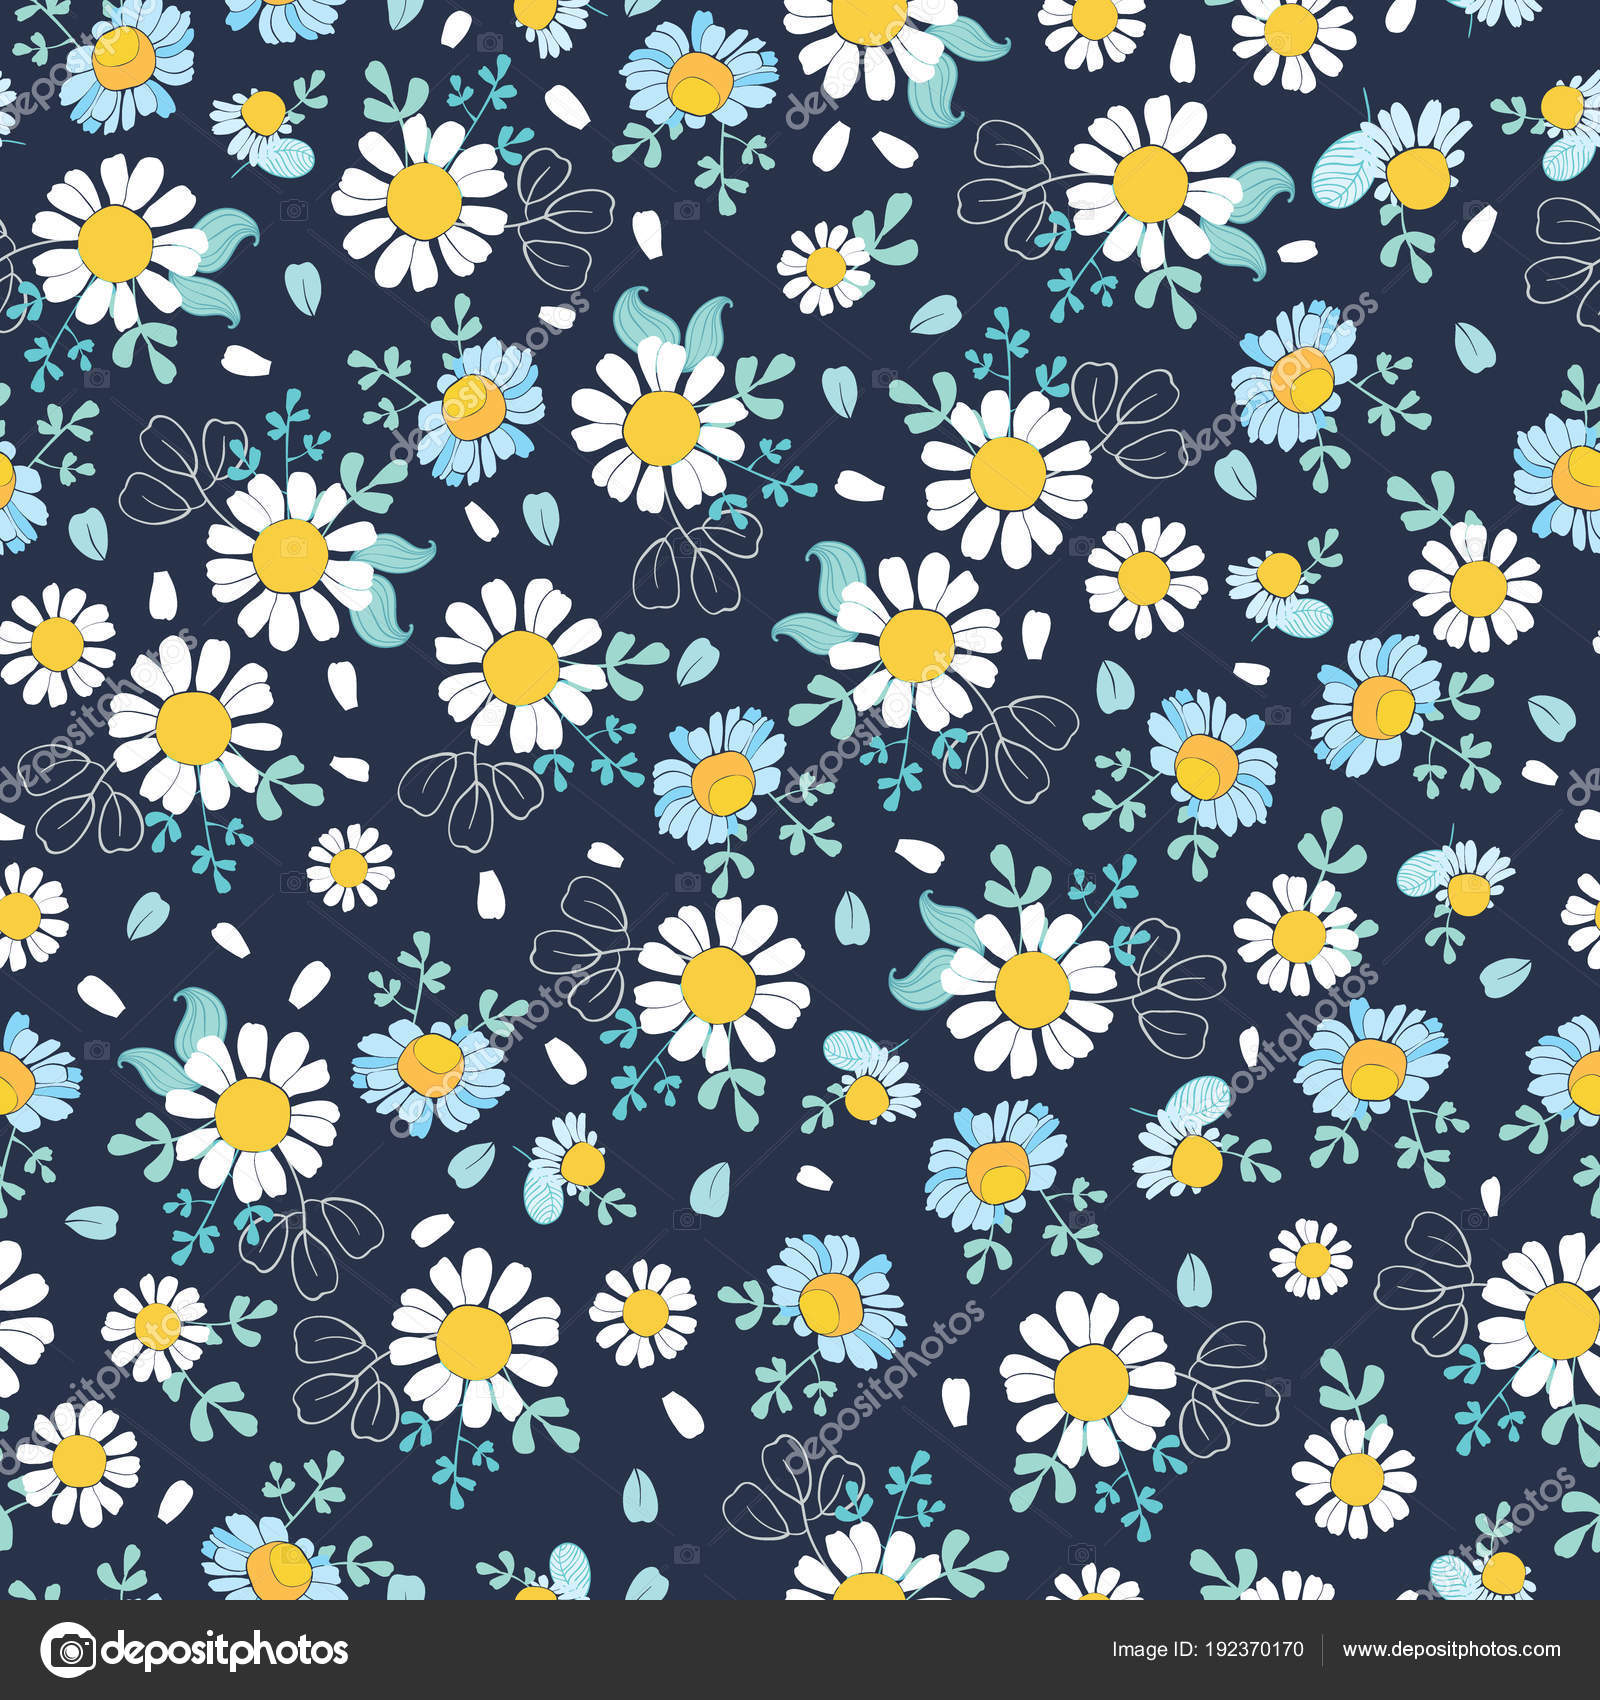 Black And White Daisy Wallpaper Black White Daisies Ditsy